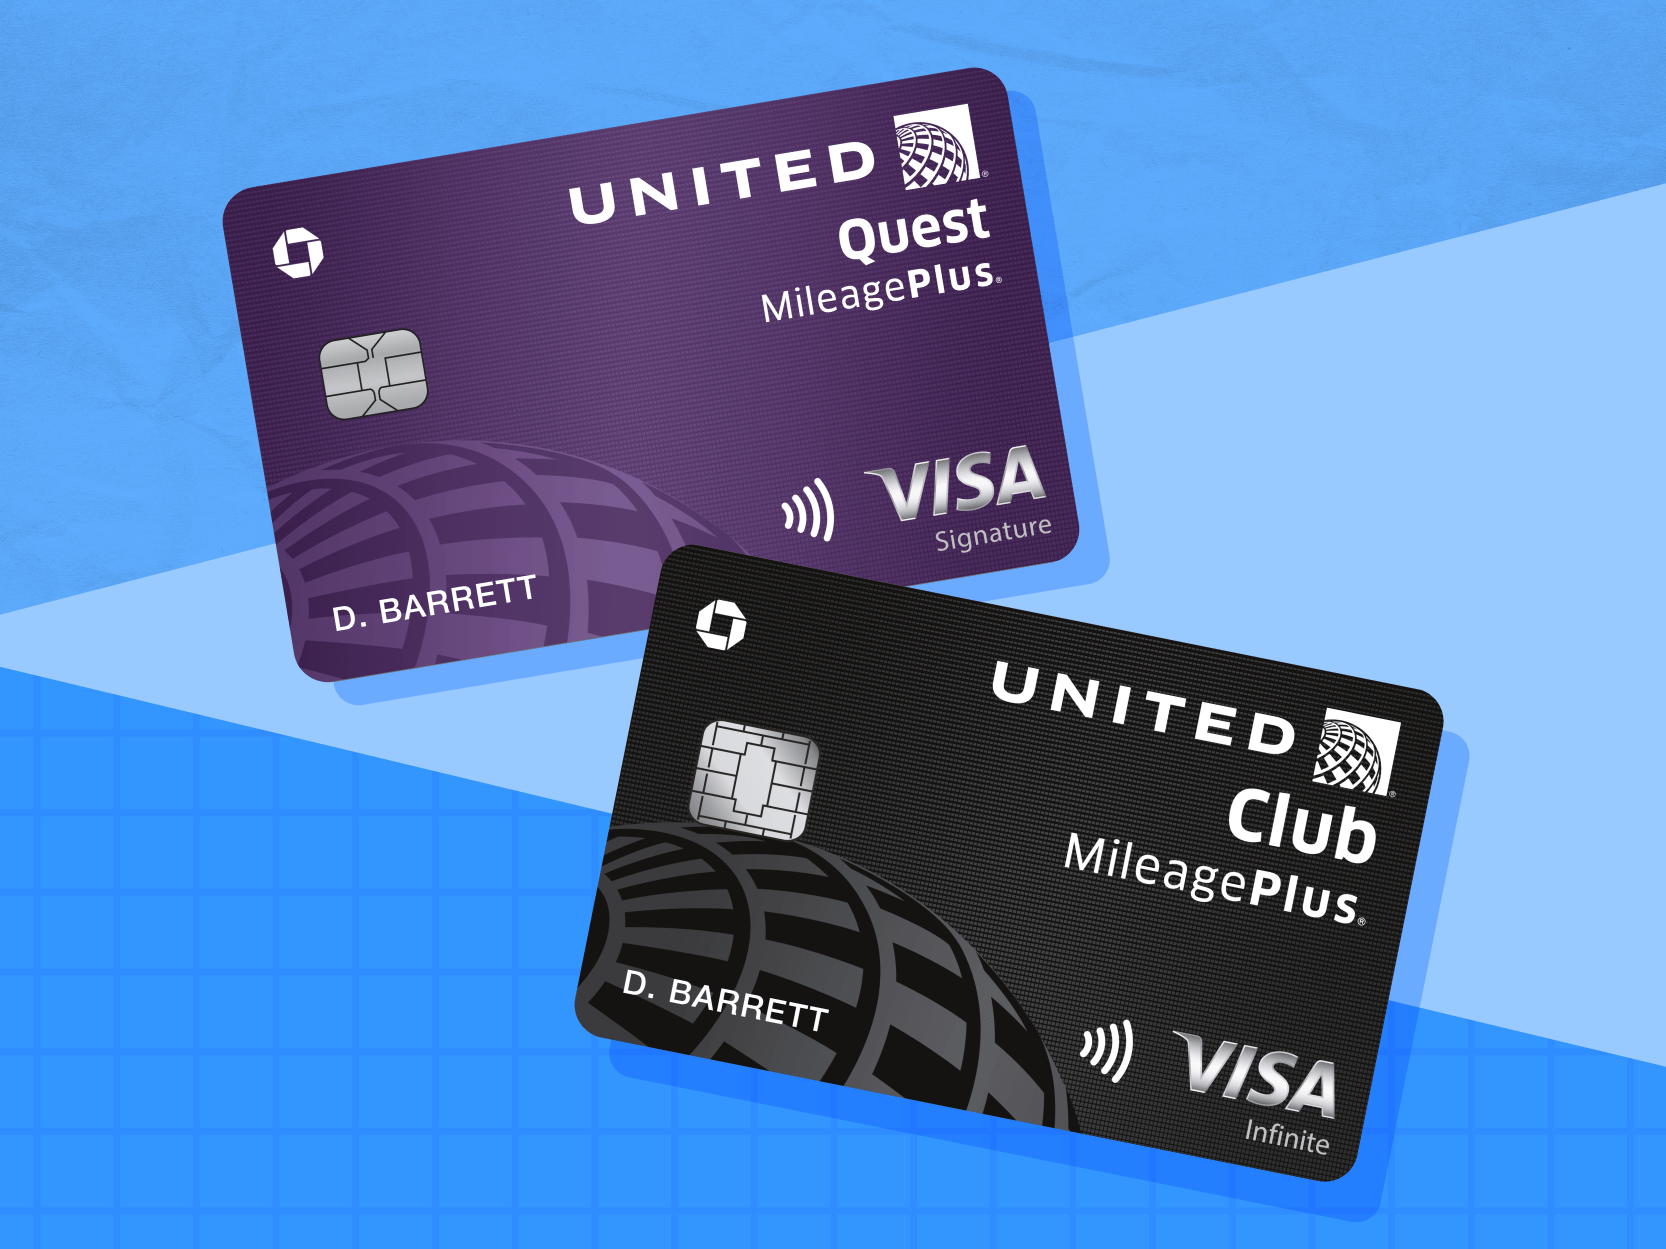 Some offers mentioned below are no longer available. Chase United Quest Vs United Club Infinite Credit Card Comparison